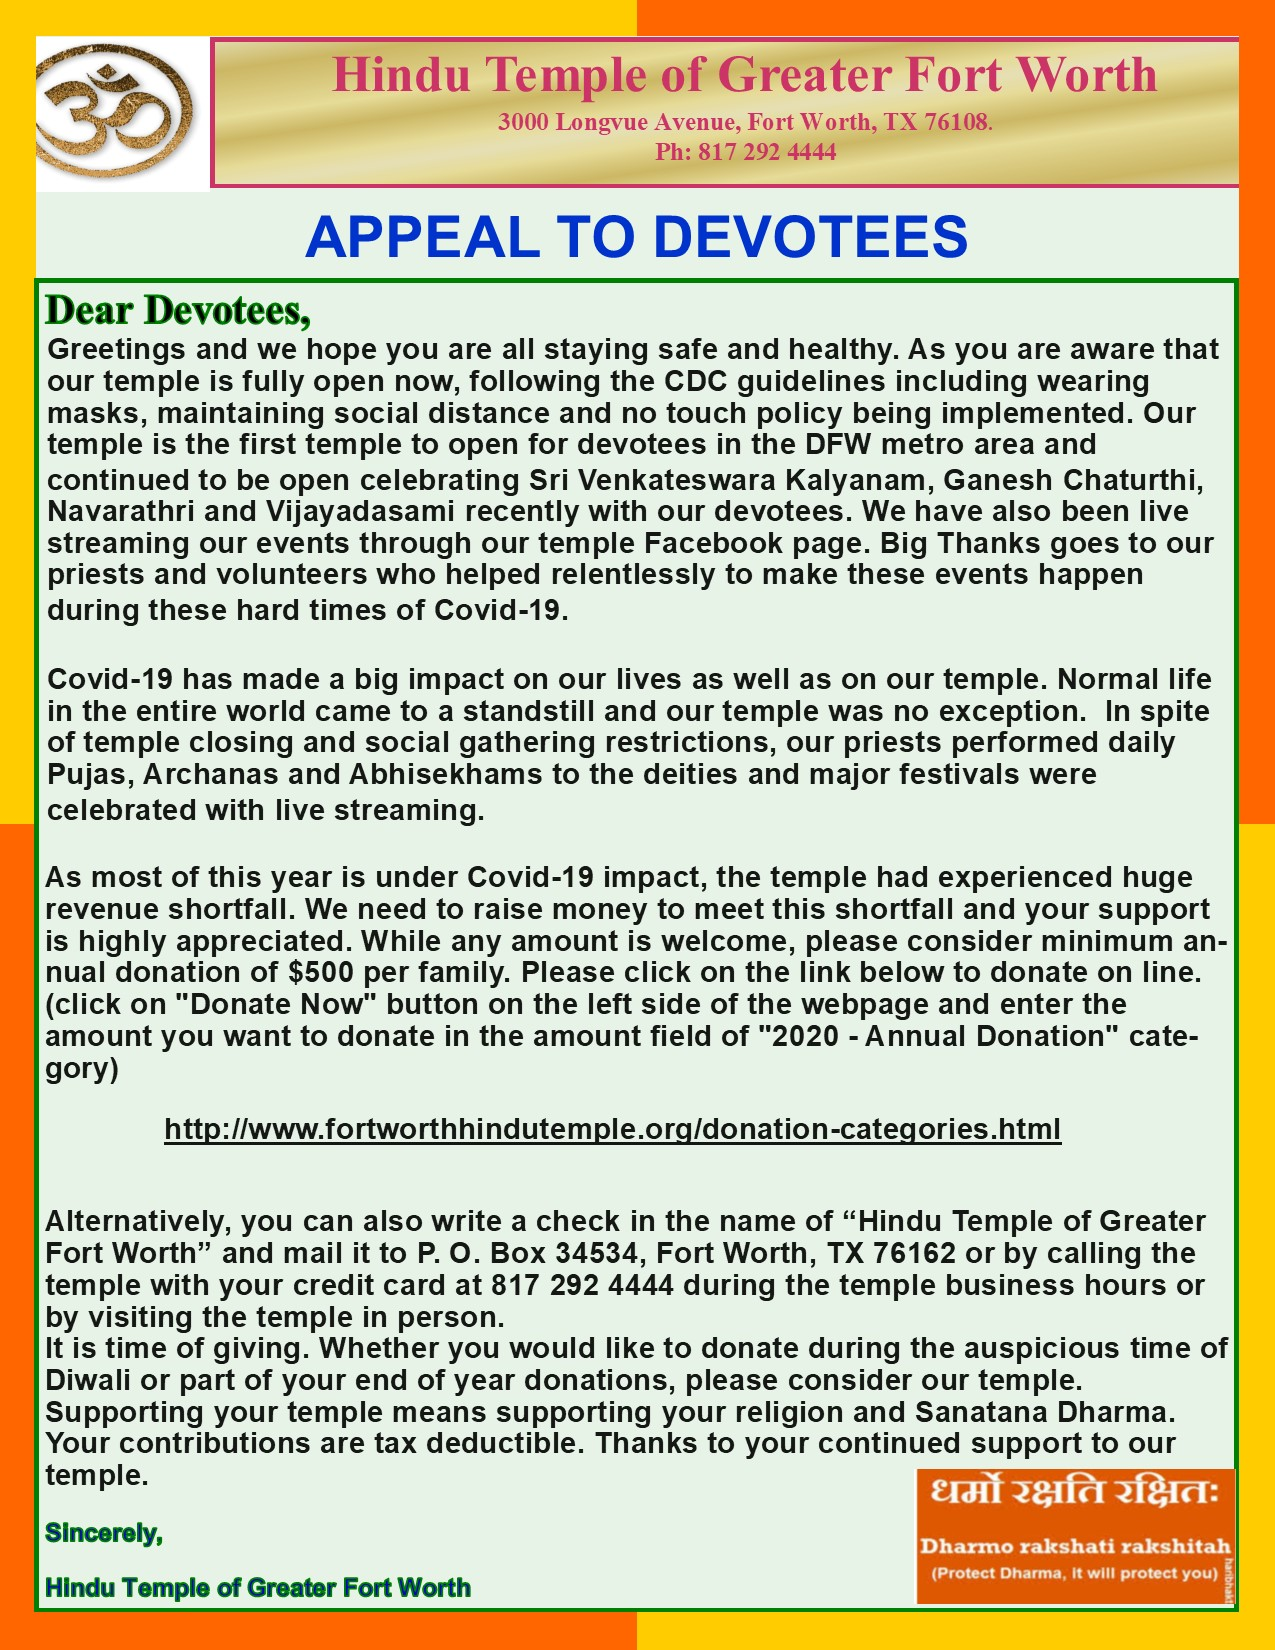 Appeal to Devotees